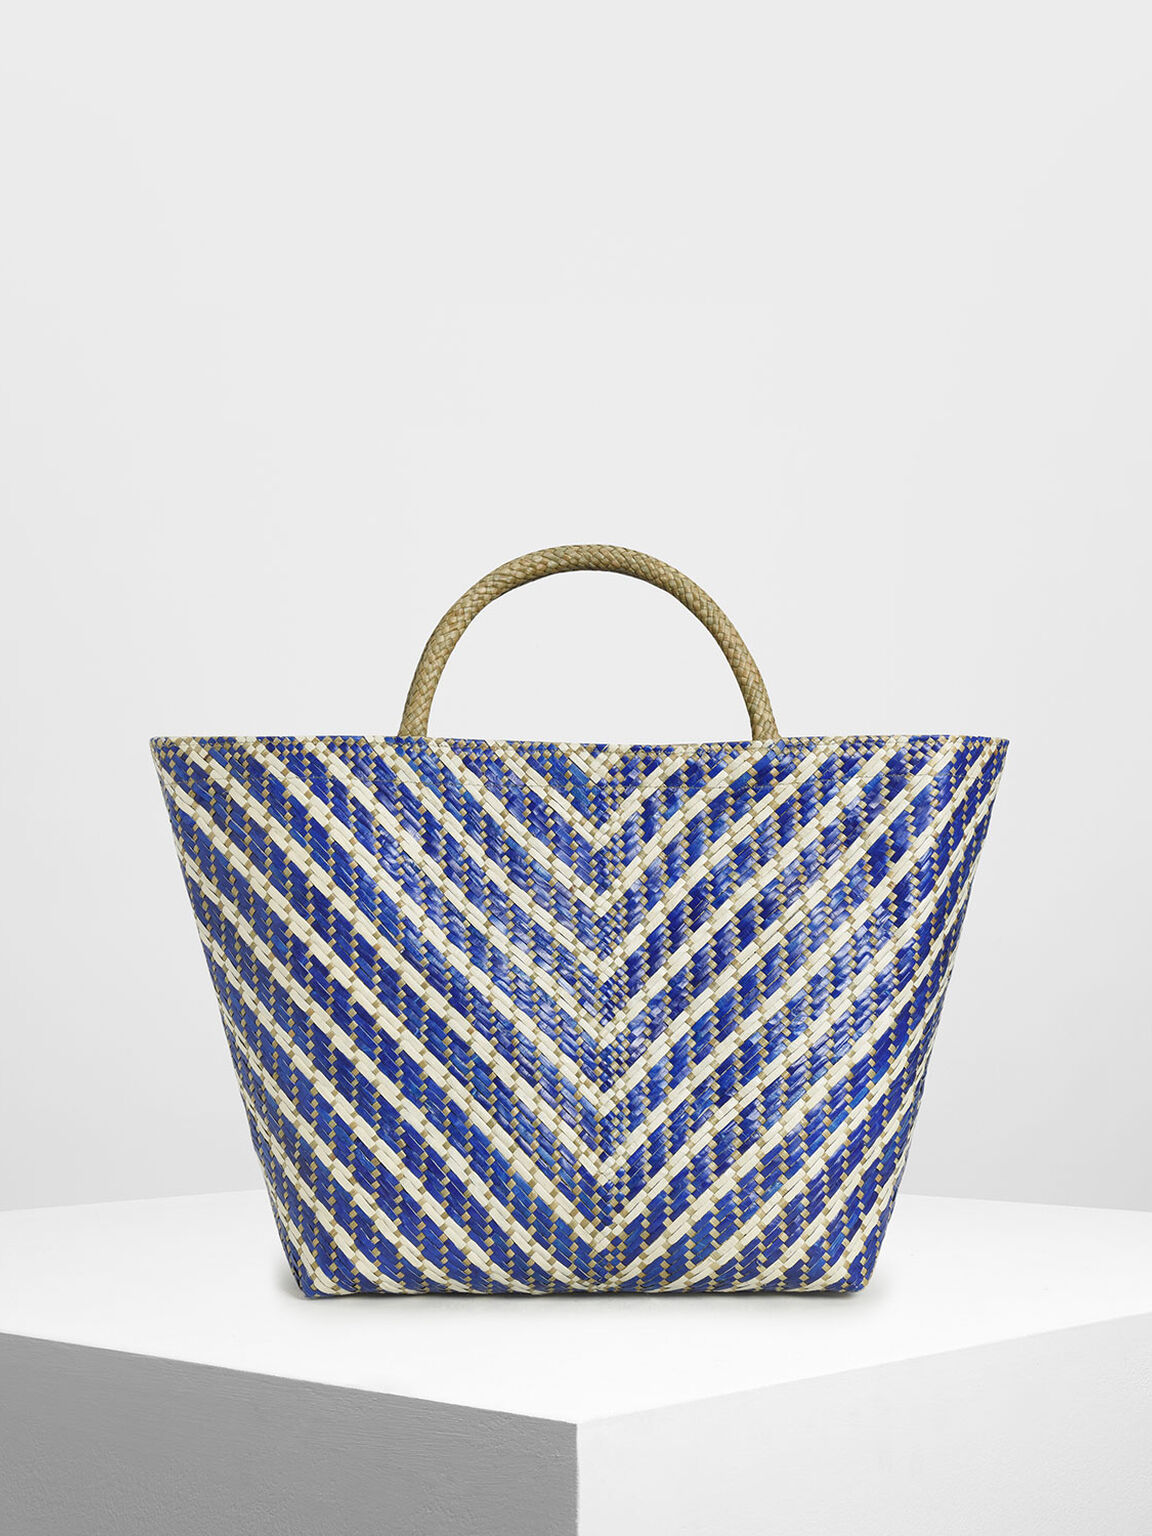 CK-IWD-TOTE Handwoven Two-Tone Banig Tote